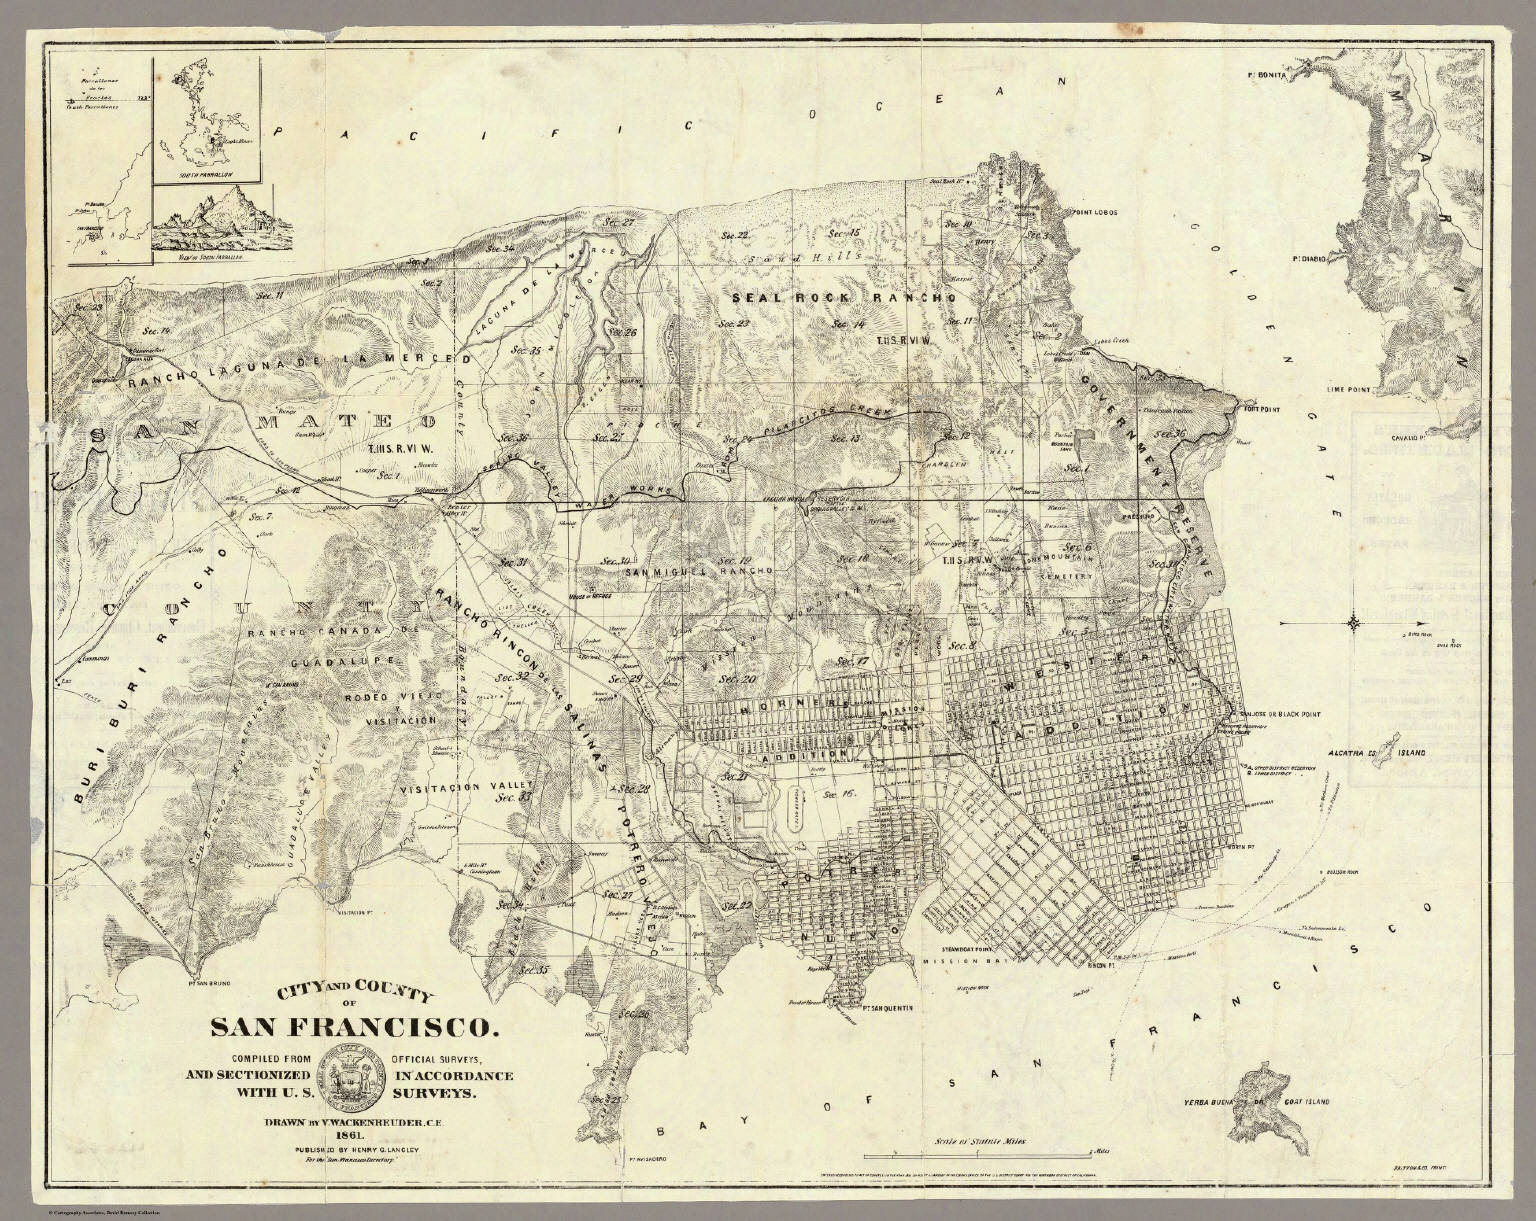 image regarding Printable Map of San Francisco called Town And County Of San Francisco. - David Rumsey Historic